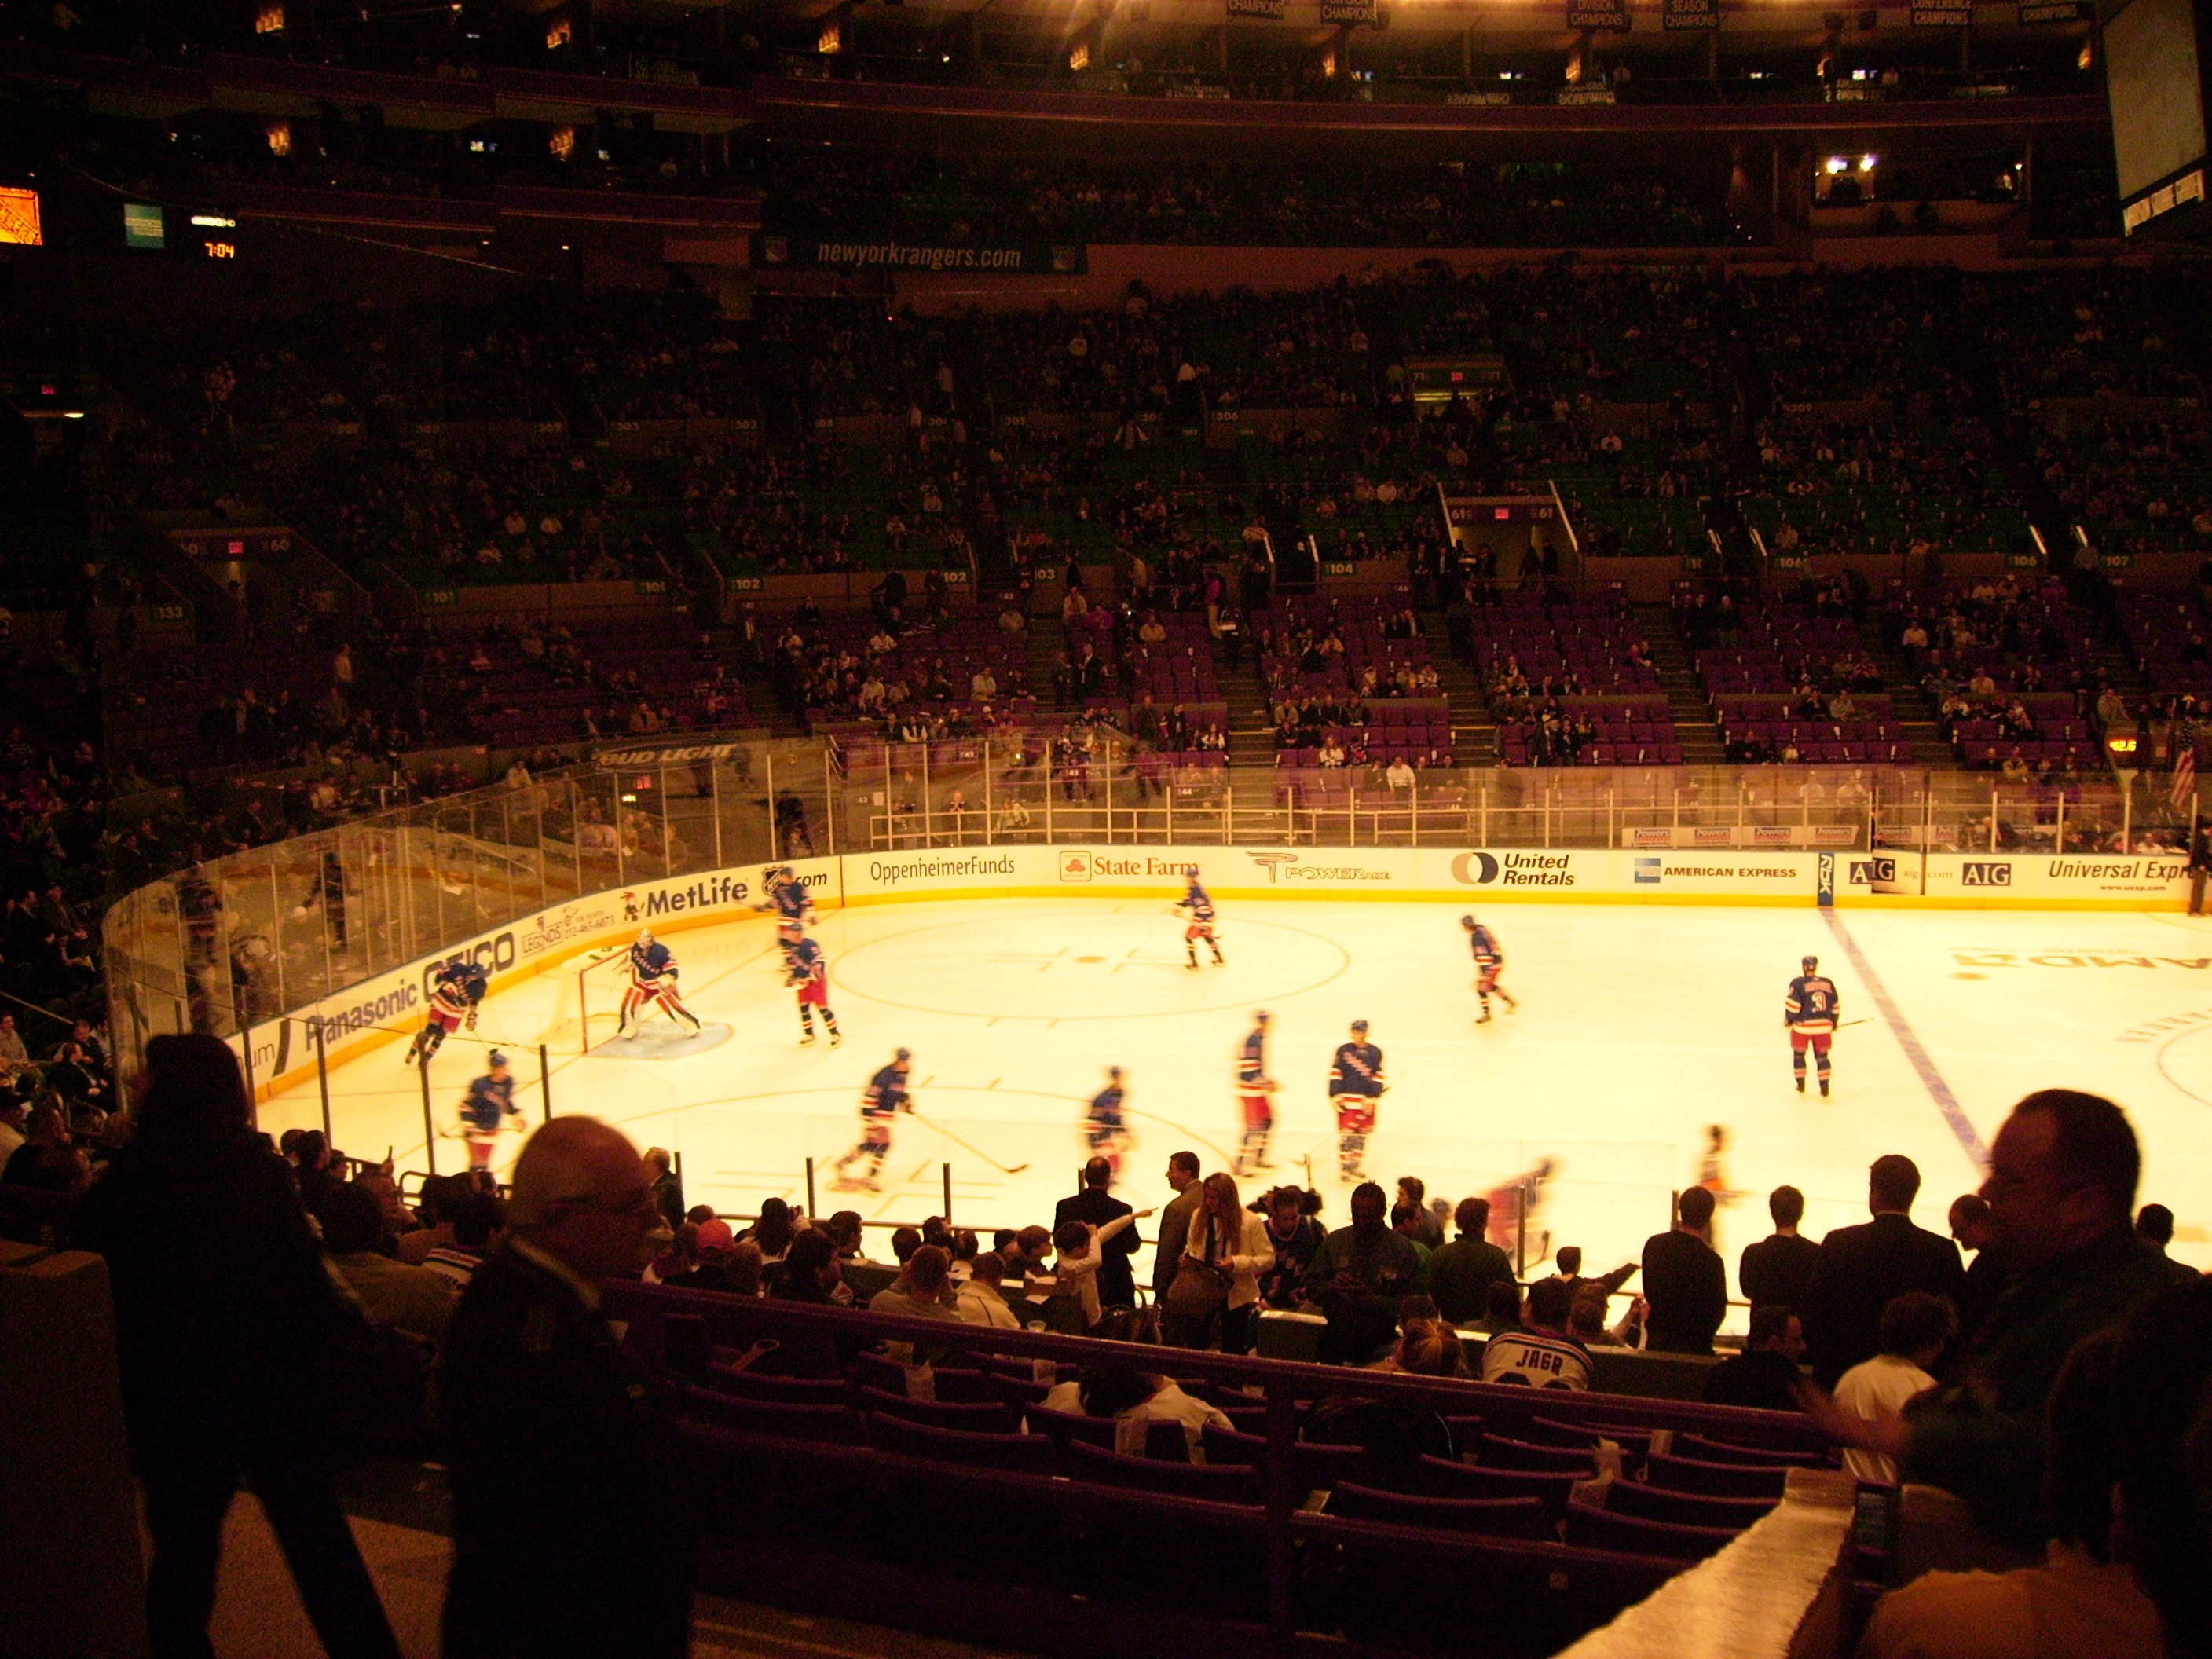 NHL au Madison Square Garden, Géant!!!!!!!